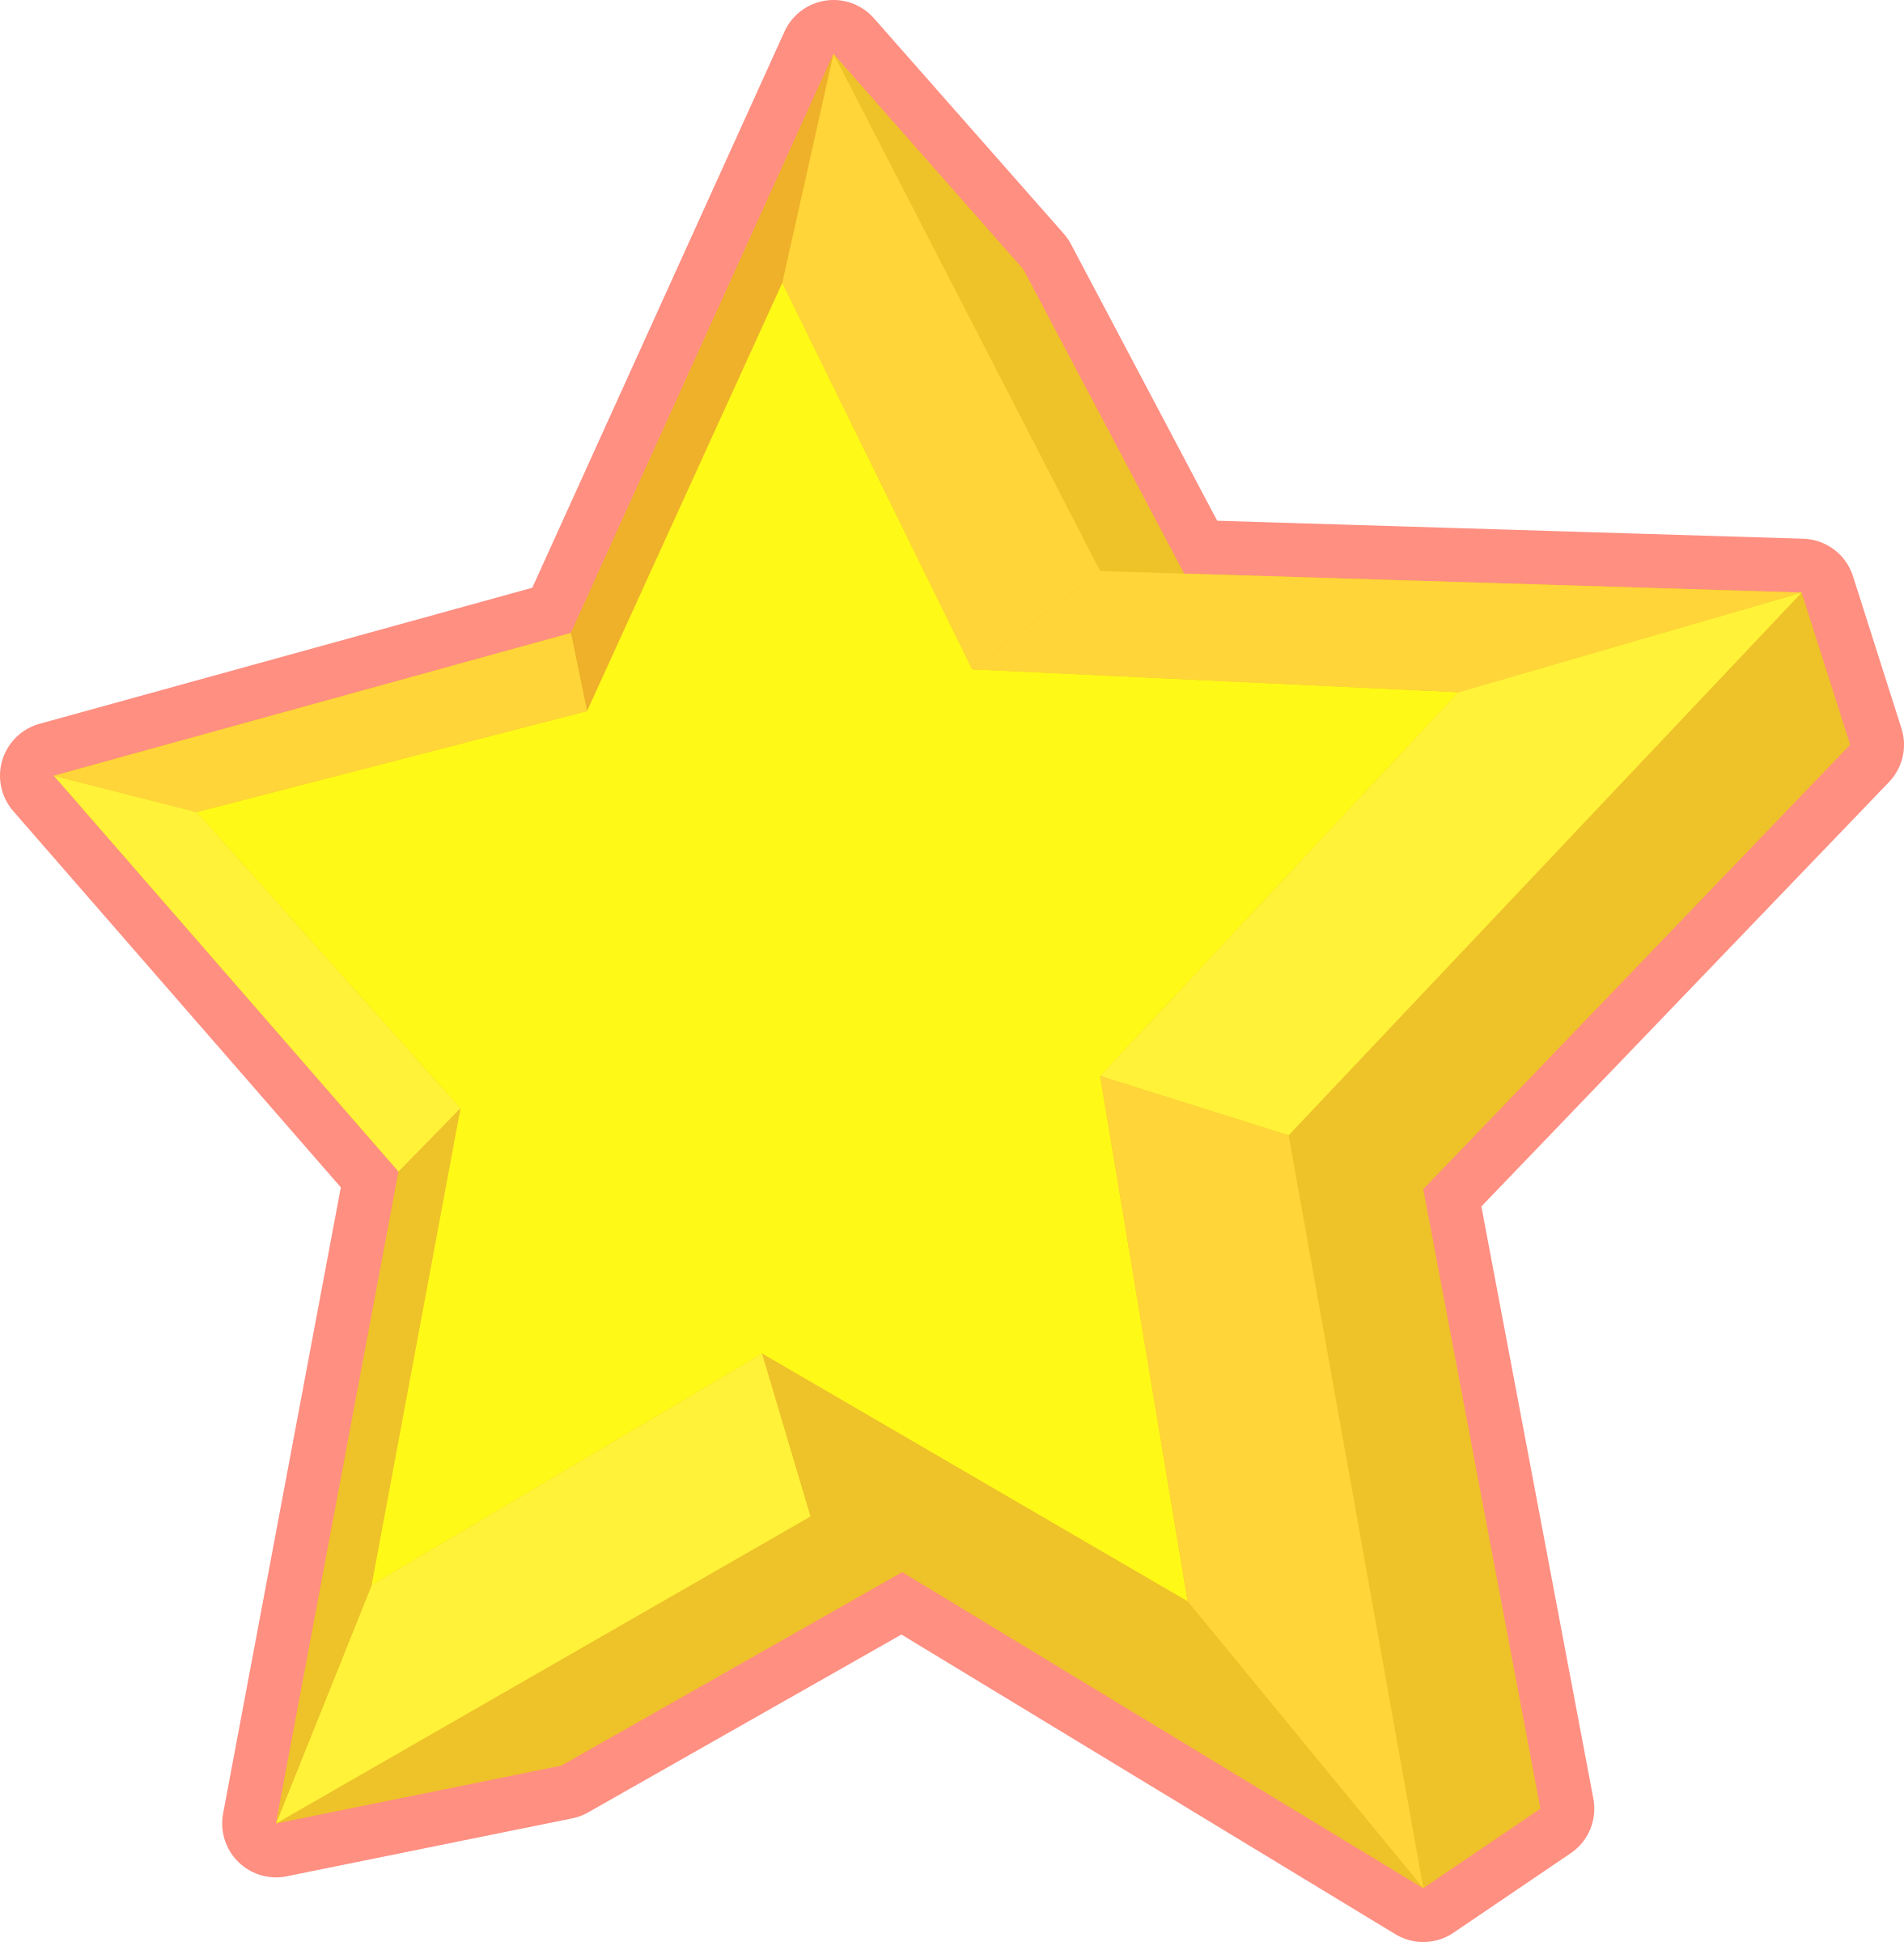 Star clipart 3d picture royalty free stock Clipart - Simple 3D Star picture royalty free stock